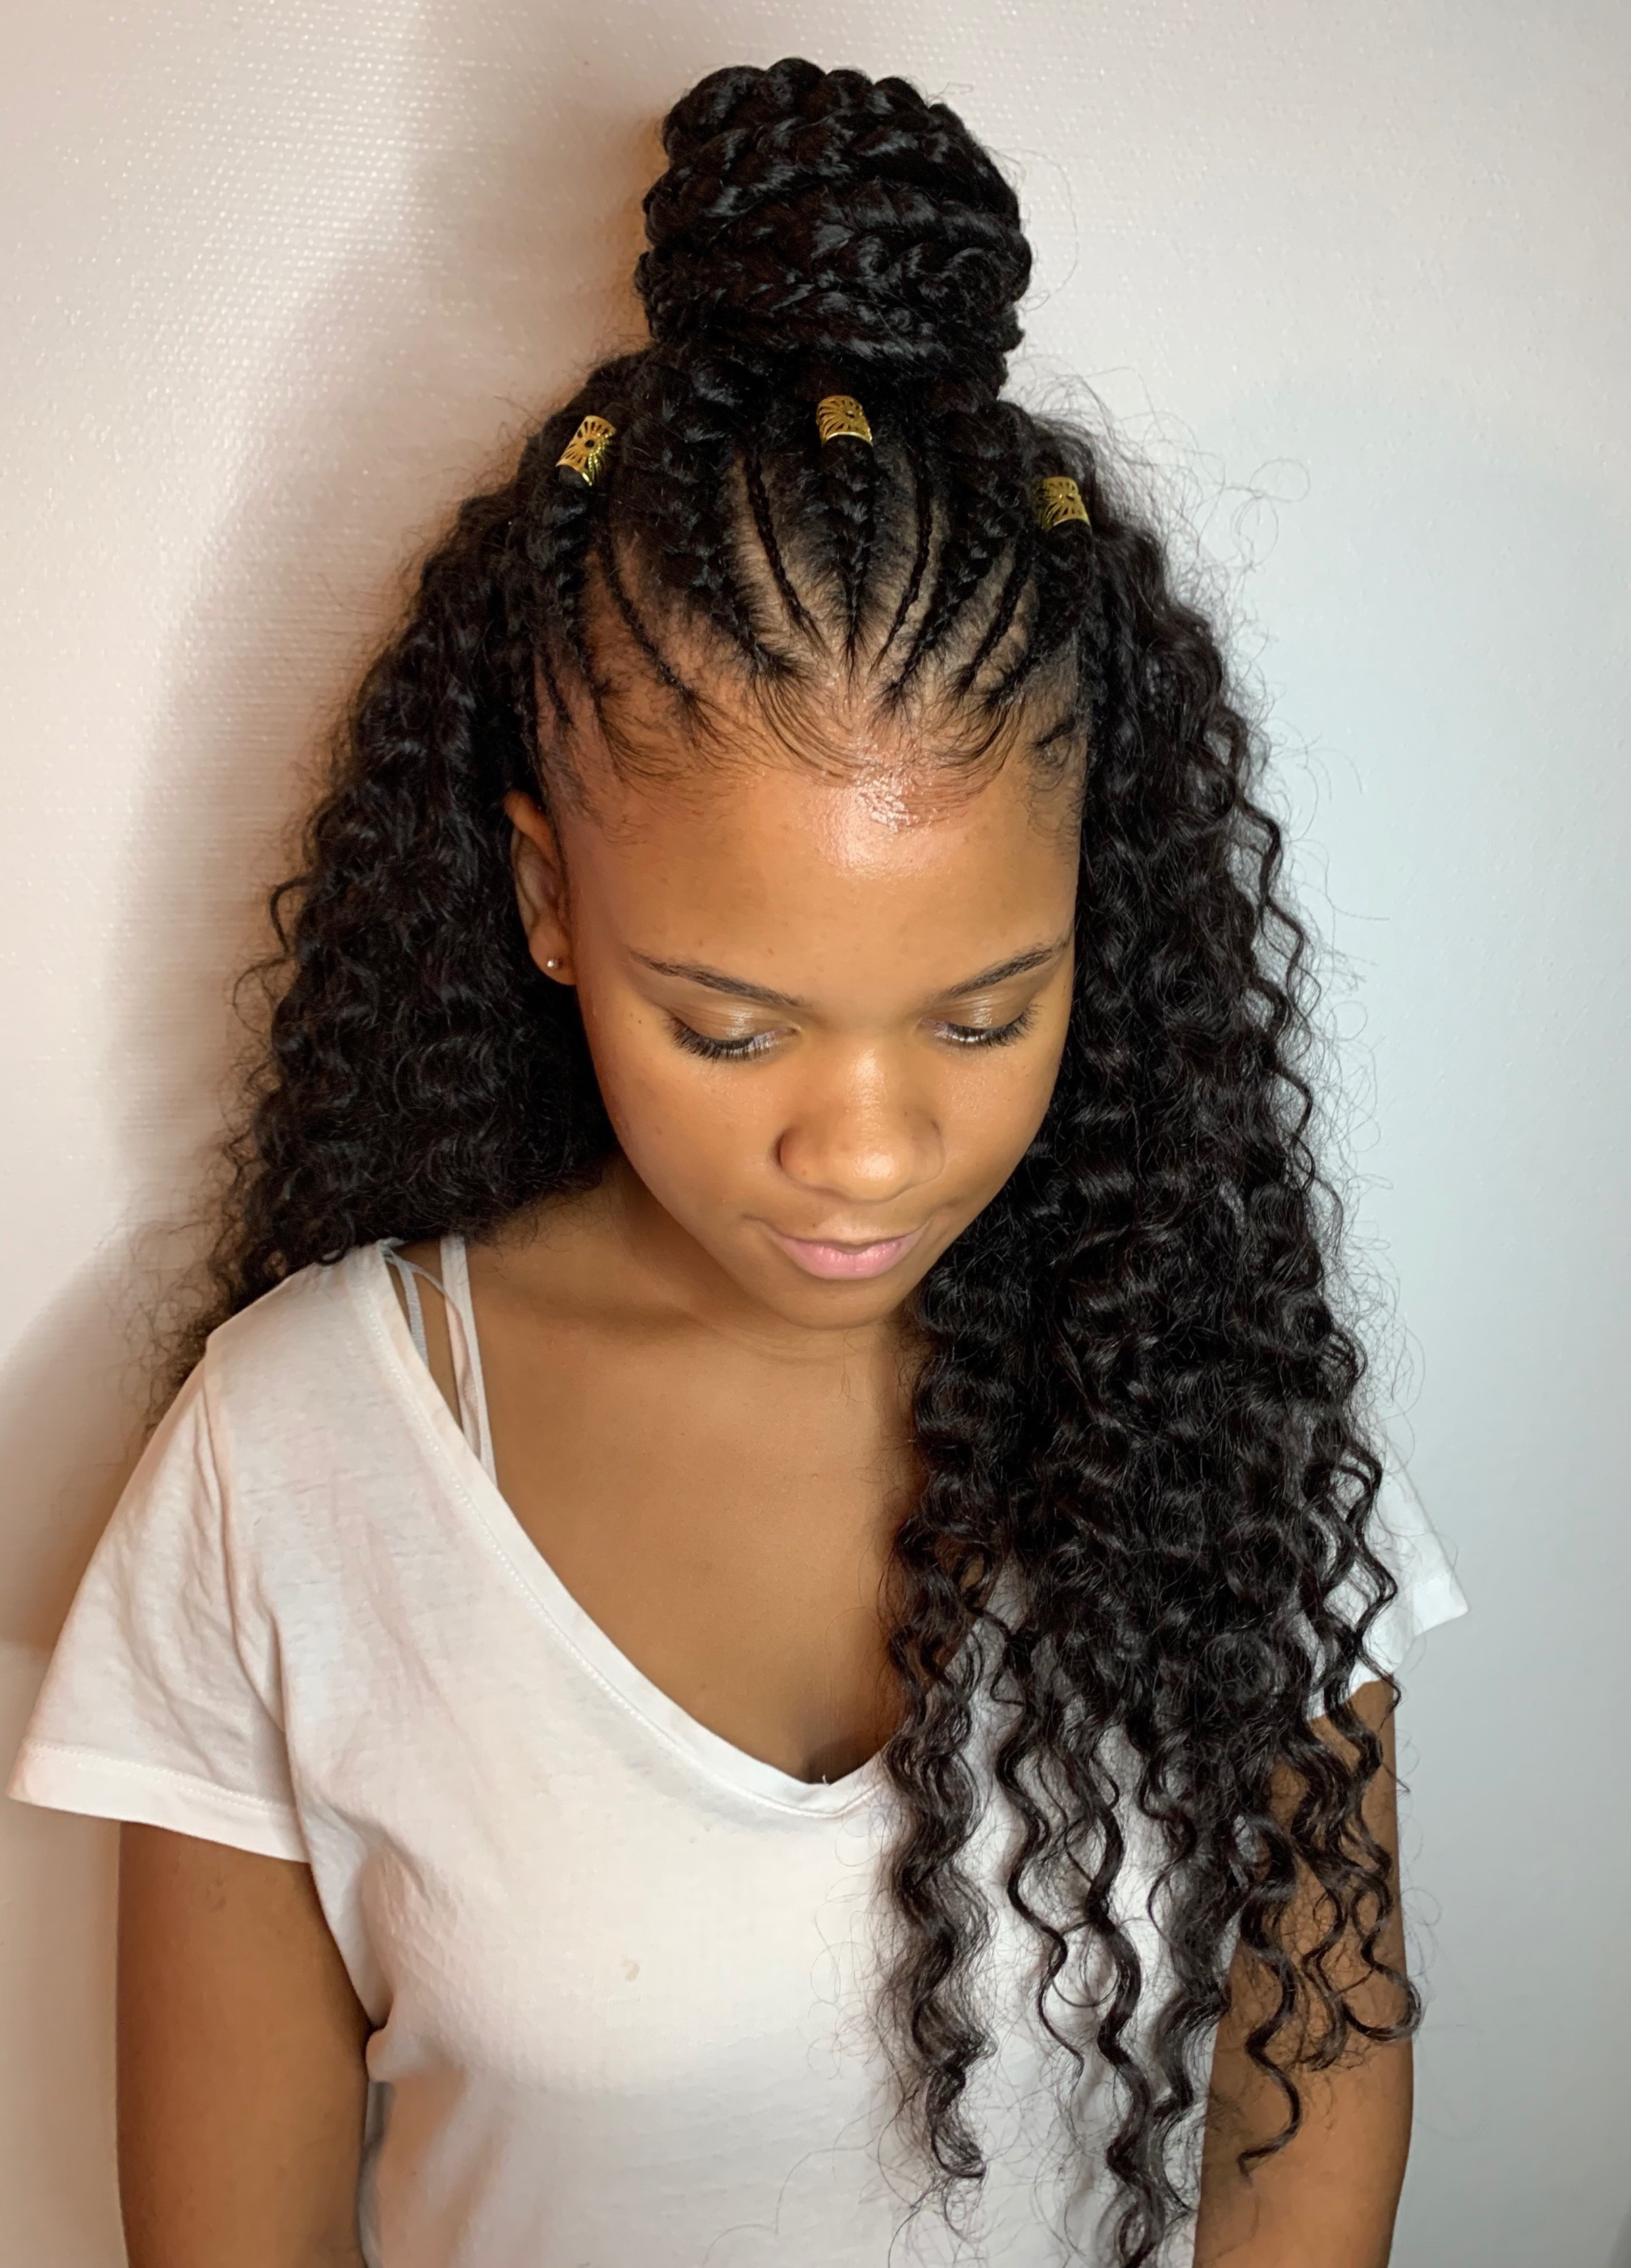 salon de coiffure afro tresse tresses box braids crochet braids vanilles tissages paris 75 77 78 91 92 93 94 95 VETWJHZY